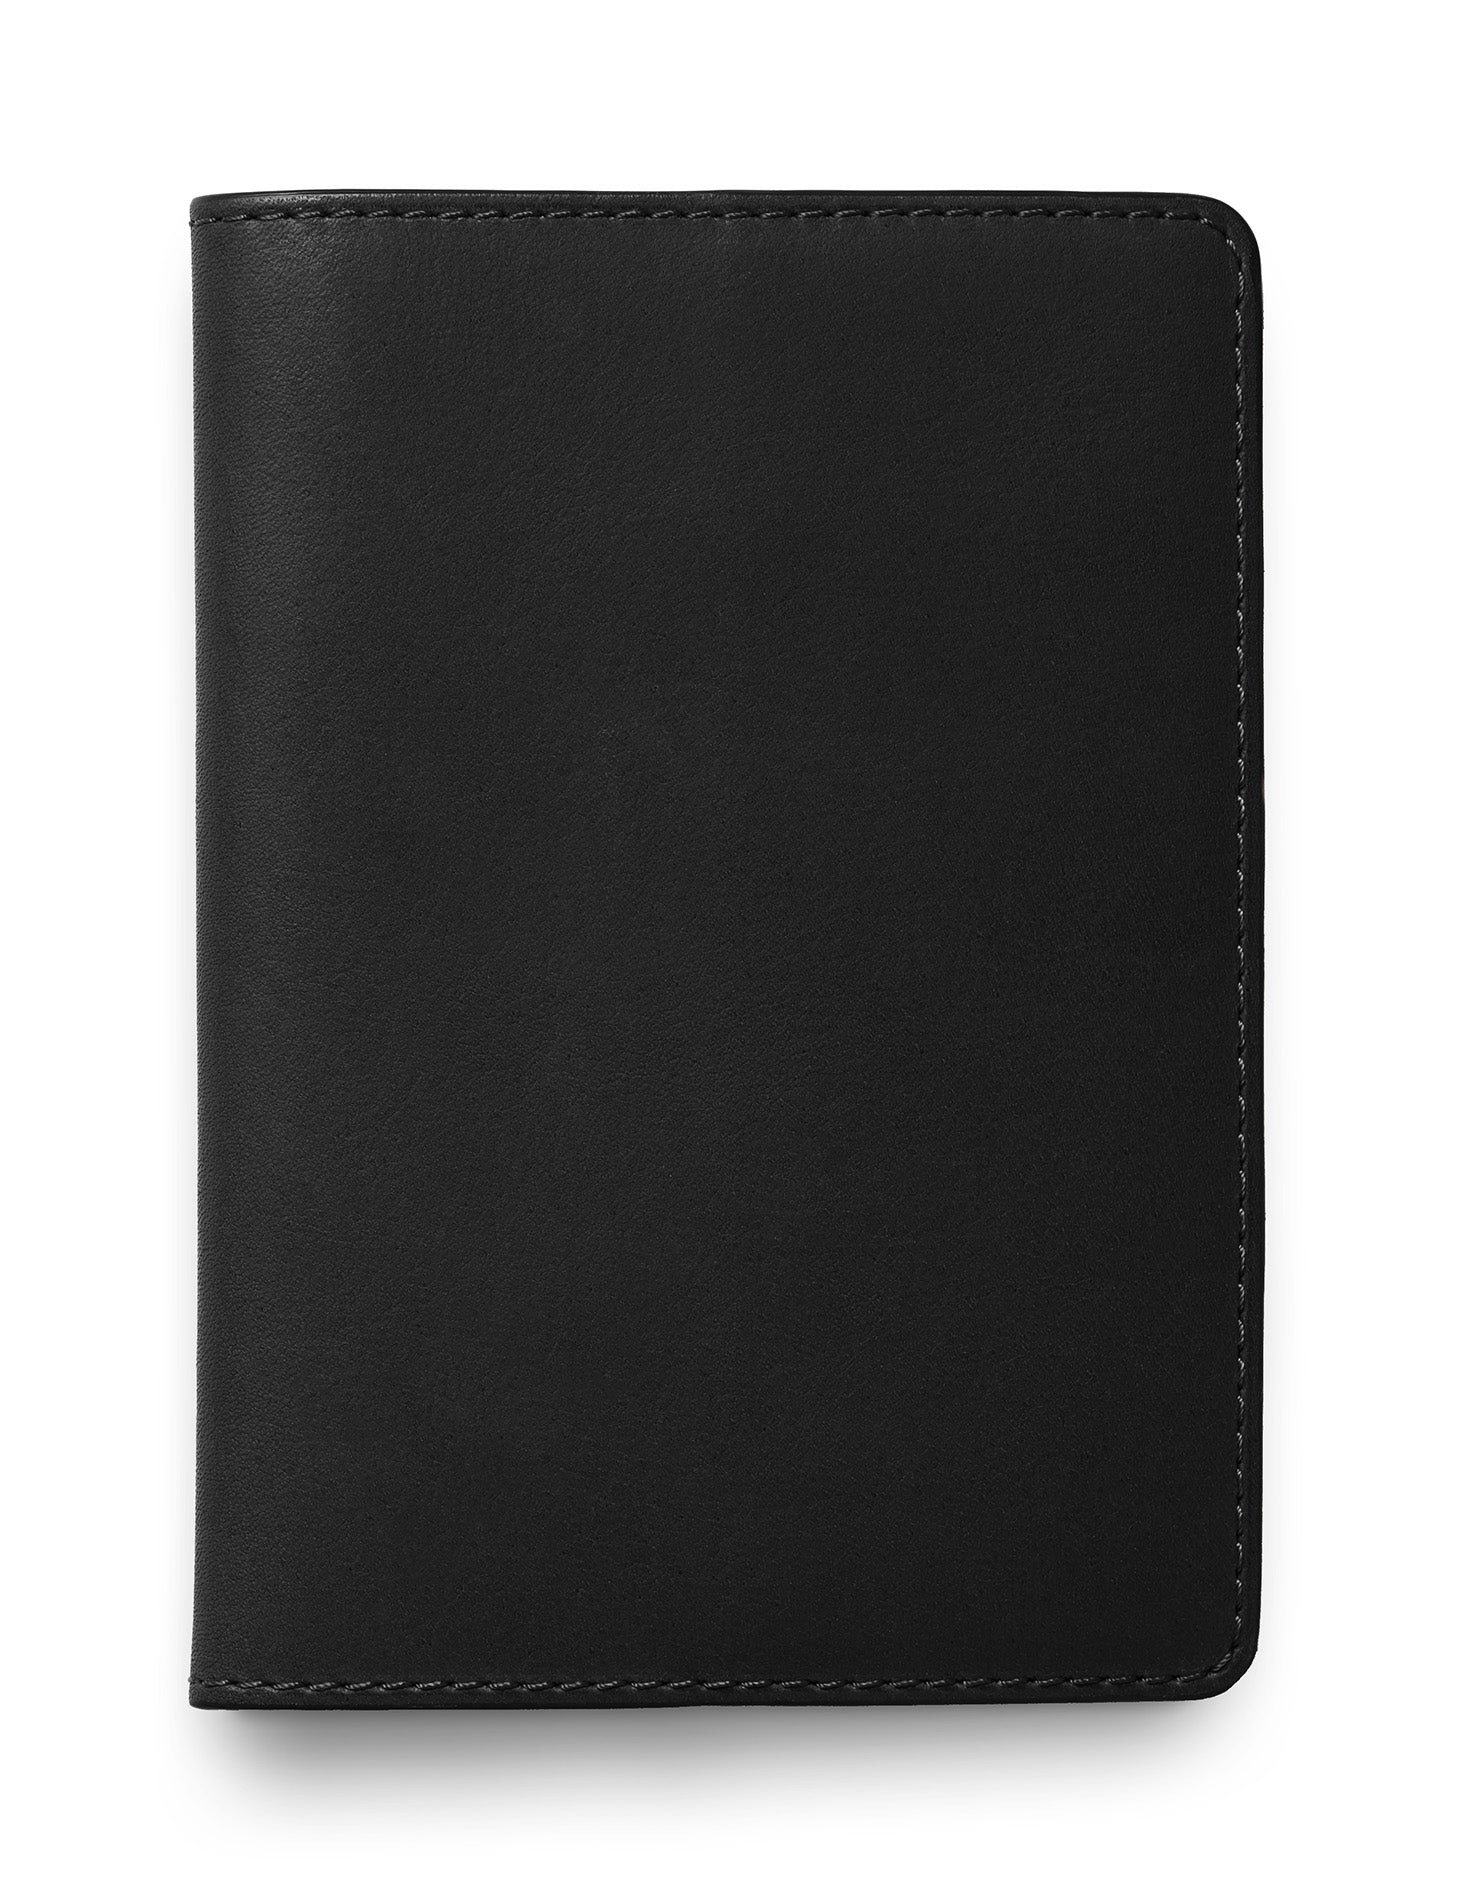 David August Luxury Genuine Vintage Calfskin Leather Passport Holder in Black